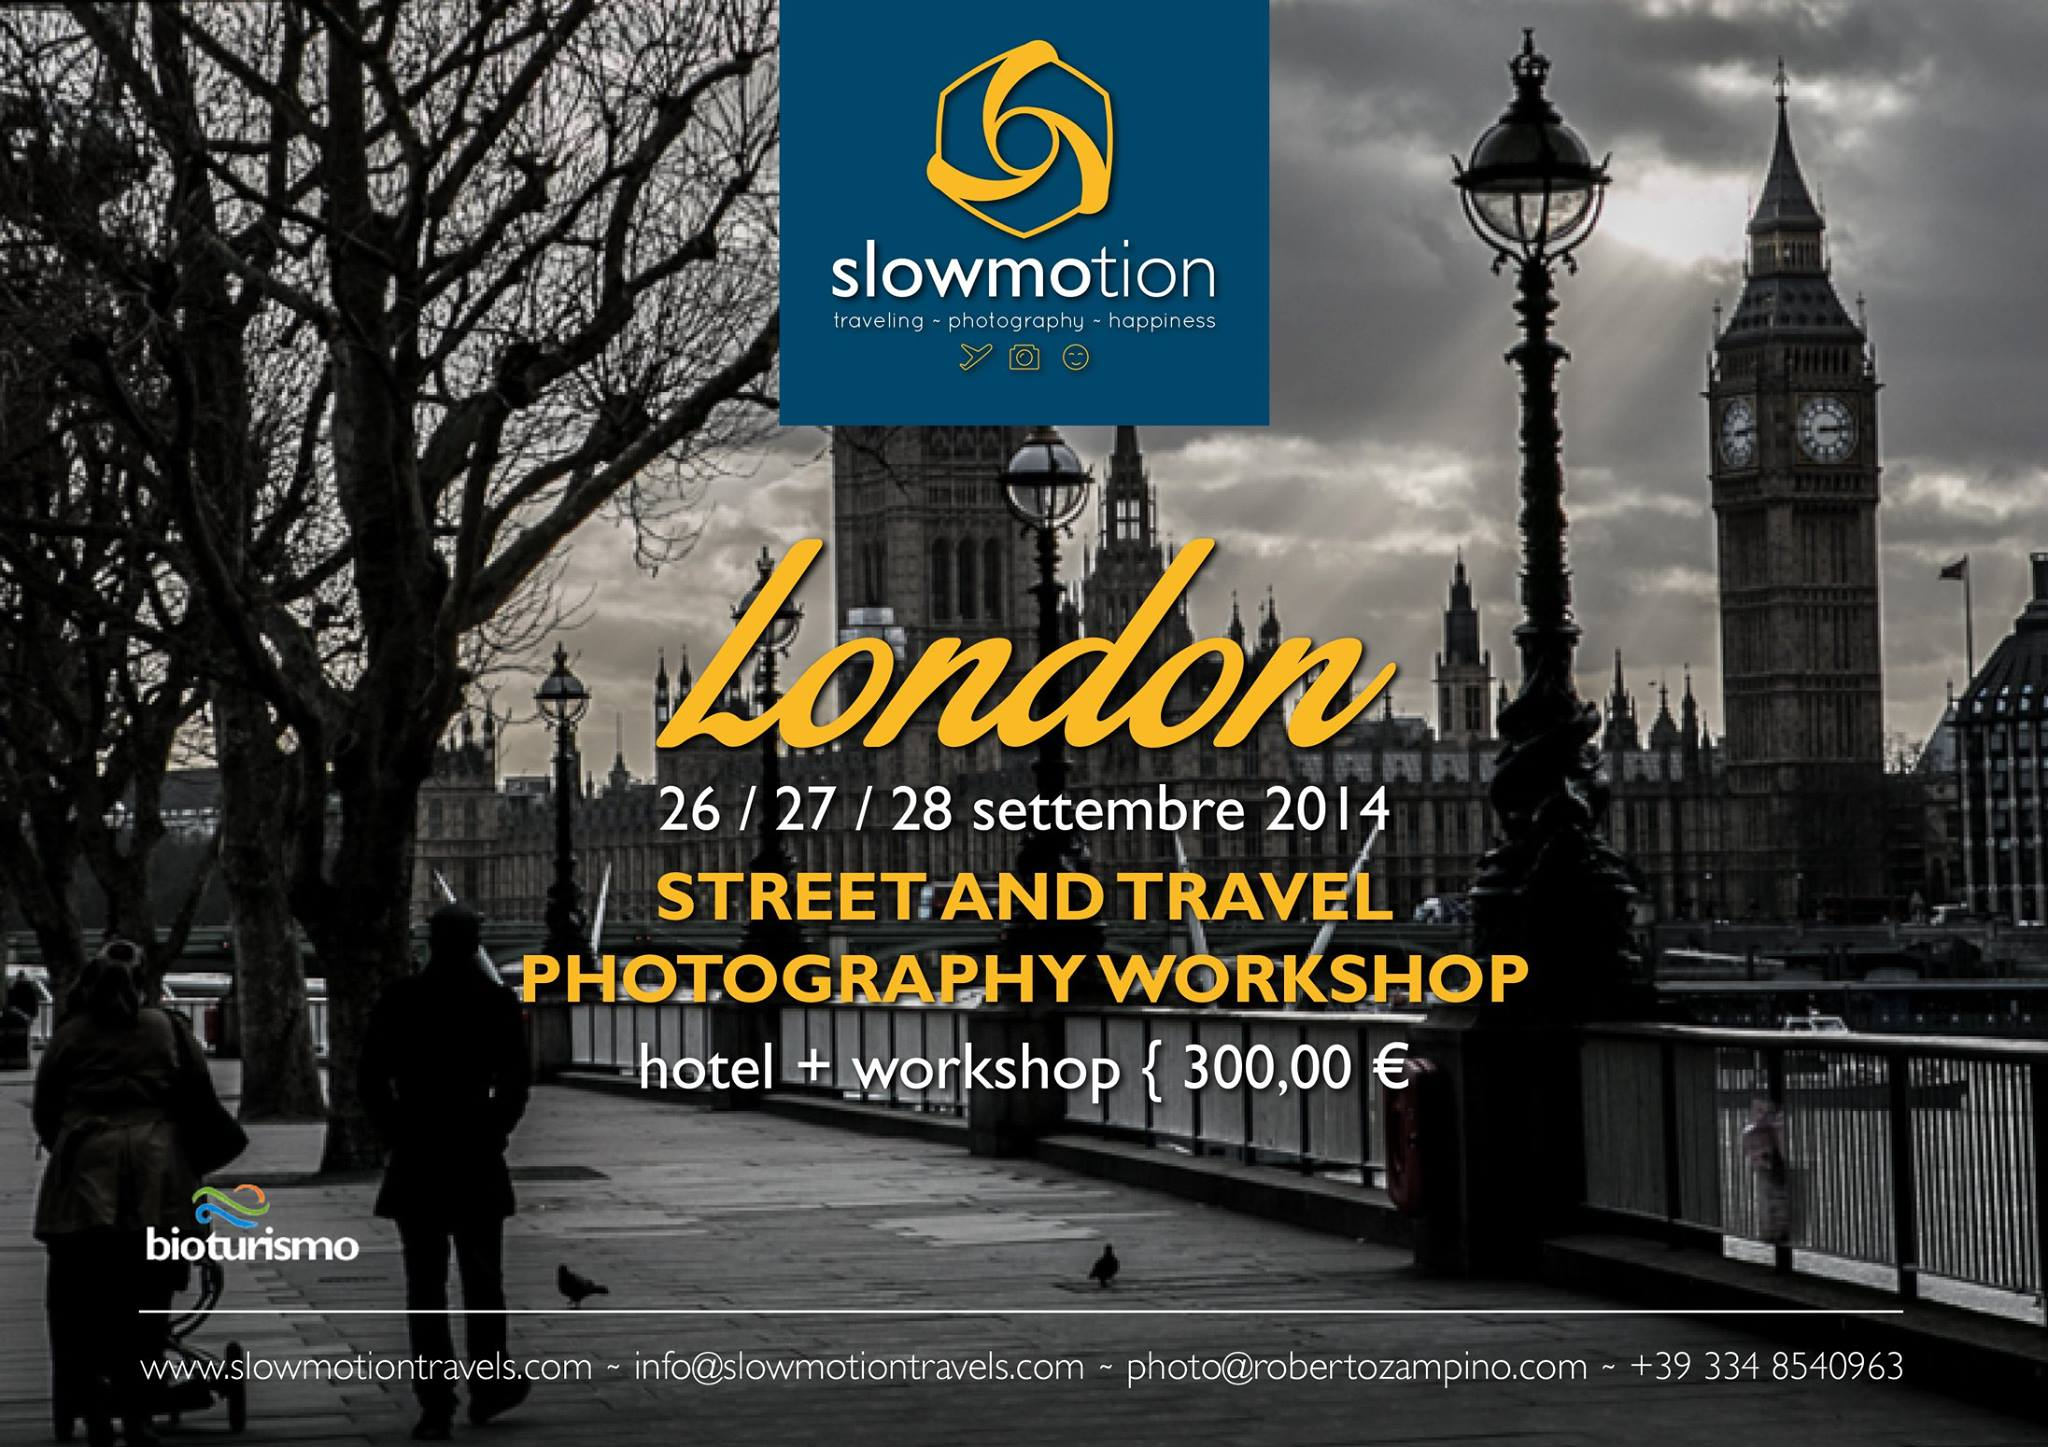 STREET AND TRAVEL PHOTOGRAPHY WORKSHOP LONDON / LONDRA 26 -27 – 28 SEPTEMBER